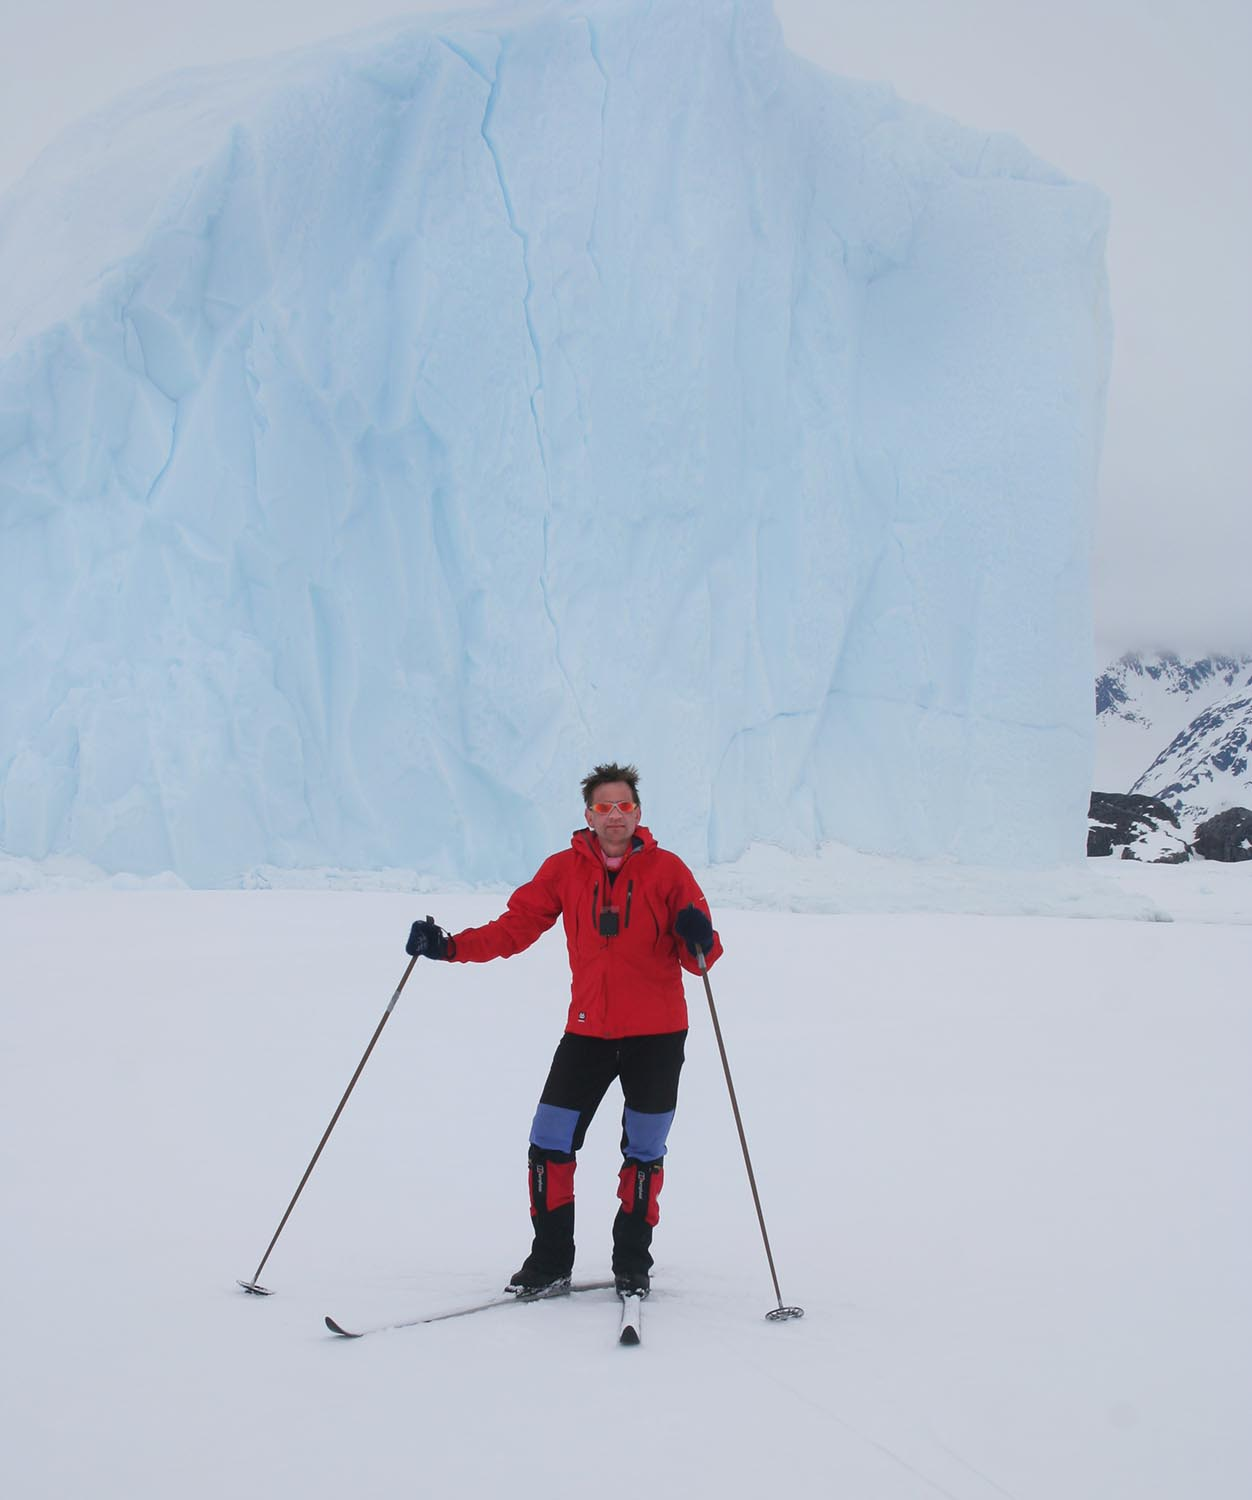 Skiing by the Icebergs